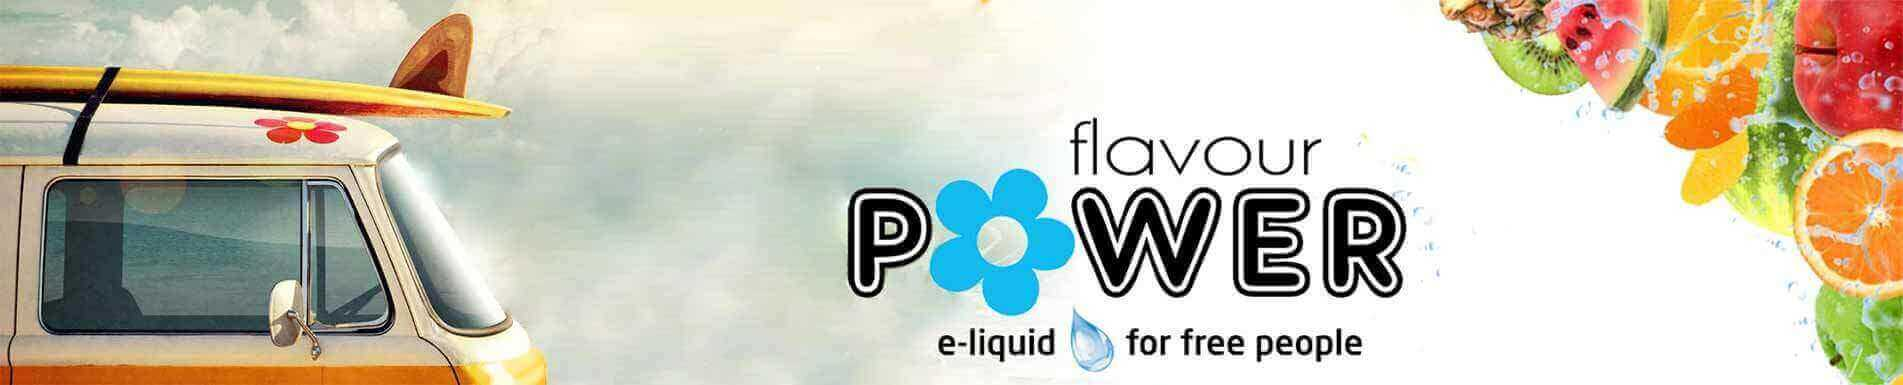 flavour power eliquide